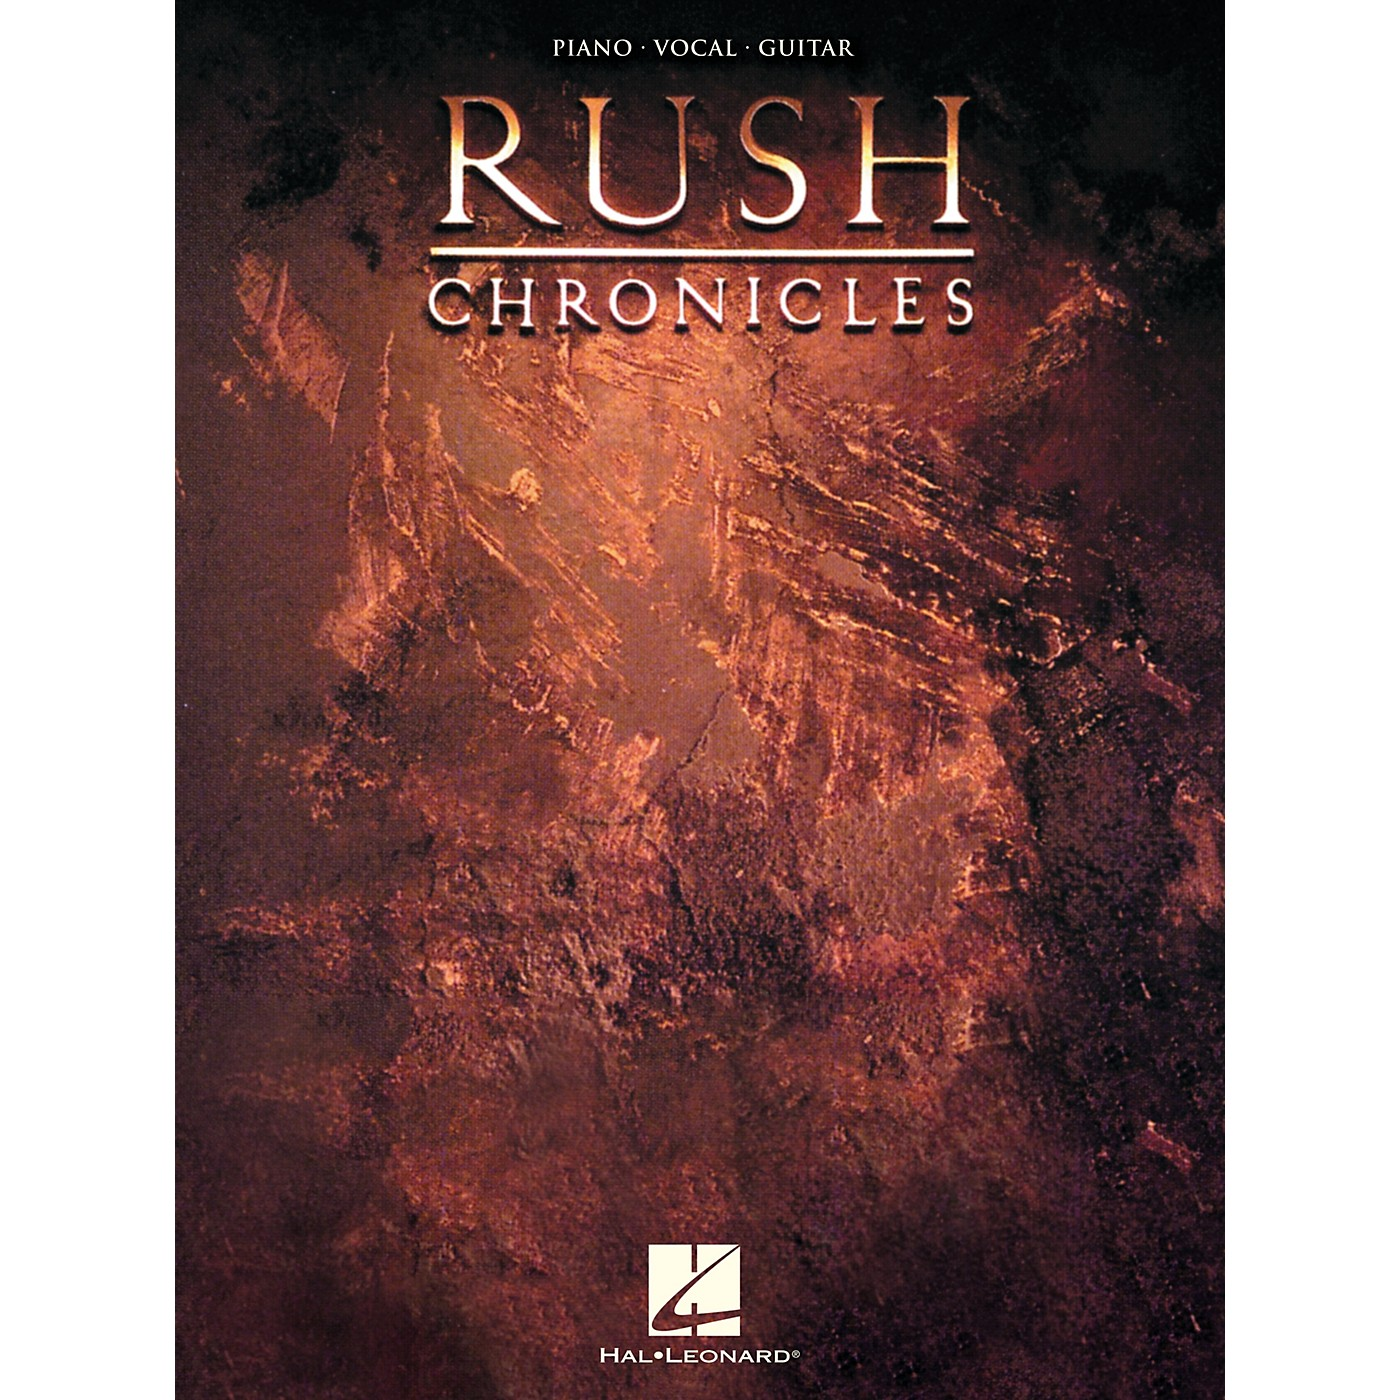 Hal Leonard Rush - Chronicles Piano/Vocal/Guitar Songbook thumbnail